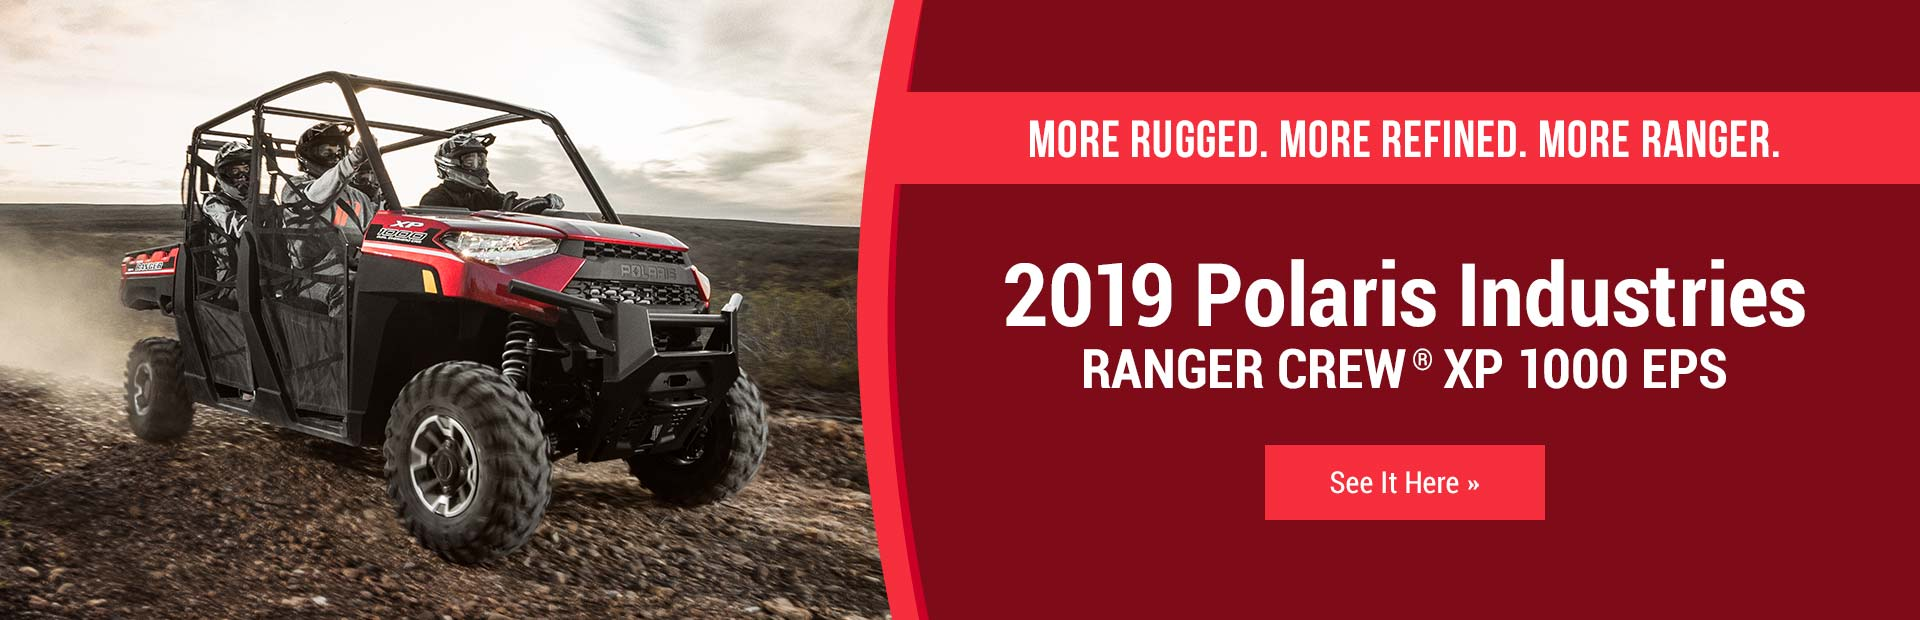 2019 Polaris Industries RANGER CREW® XP 1000 EPS: Click here to view the model.